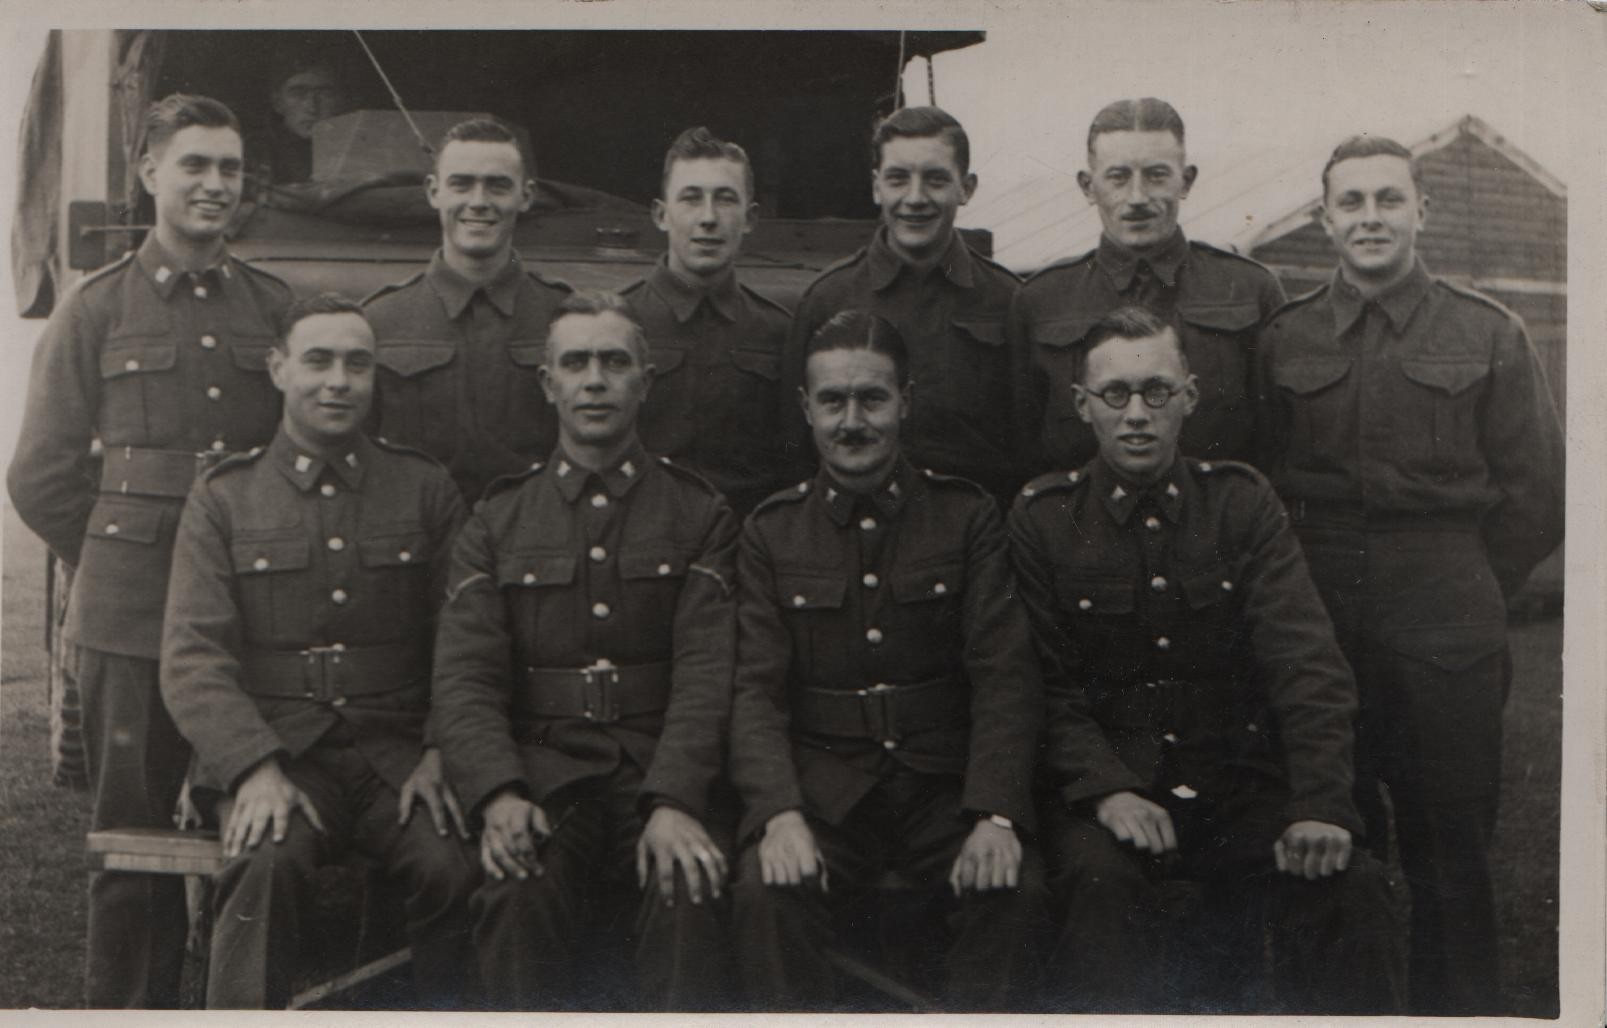 1939 Burnham Market 2nd/6th Bttn Essex Regiment Territorials: DL front far right